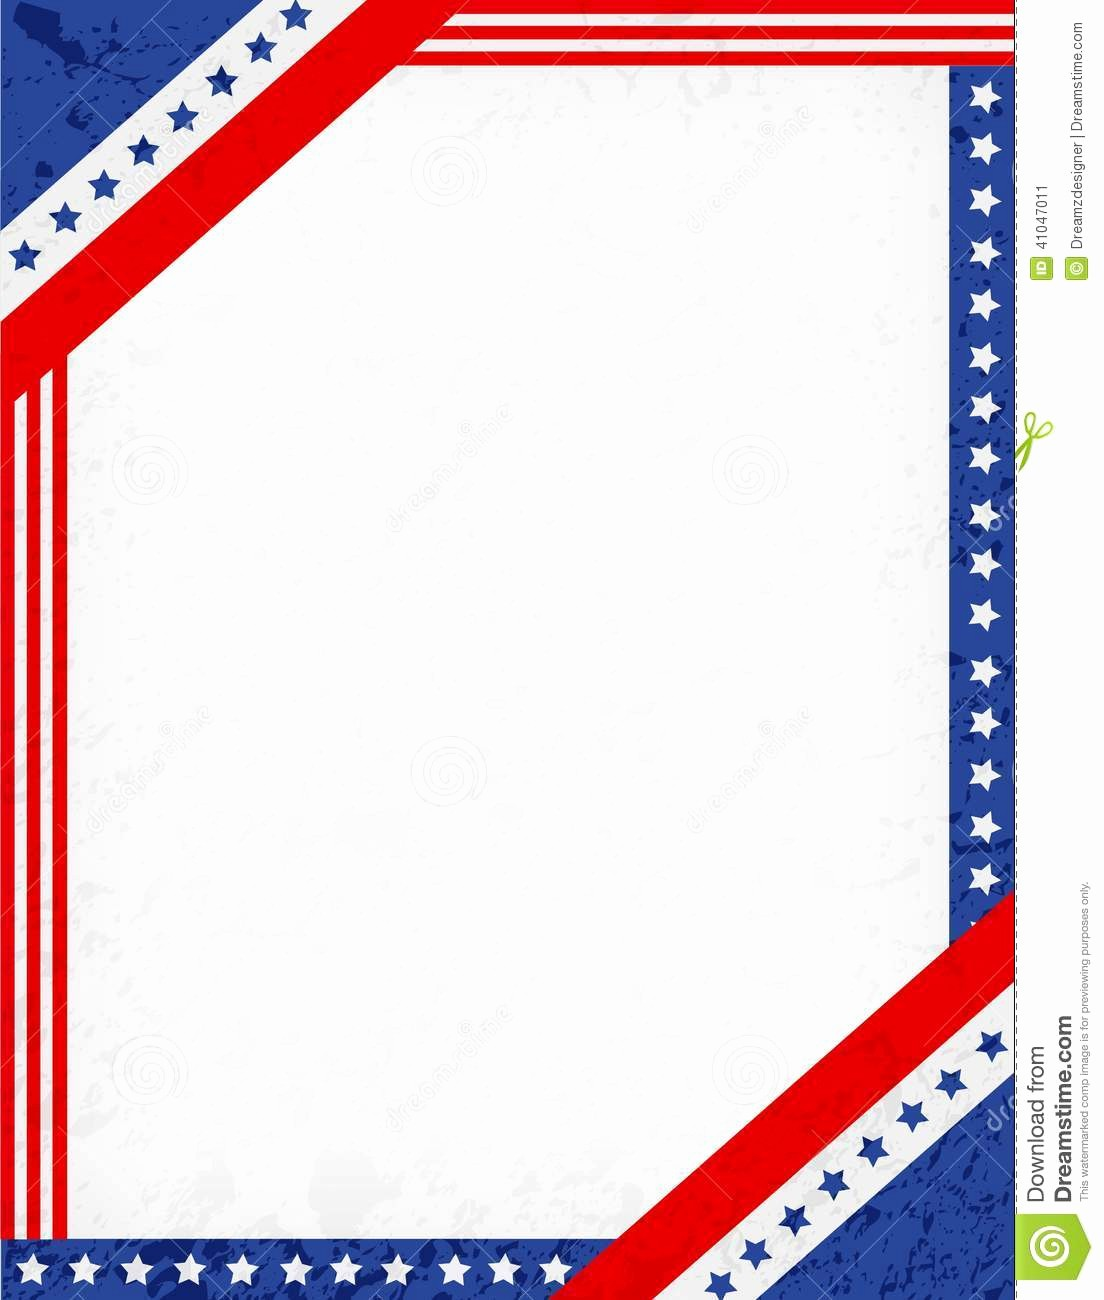 American Flag Border for Word Best Of American Flag for Word Clipart Clipart Suggest